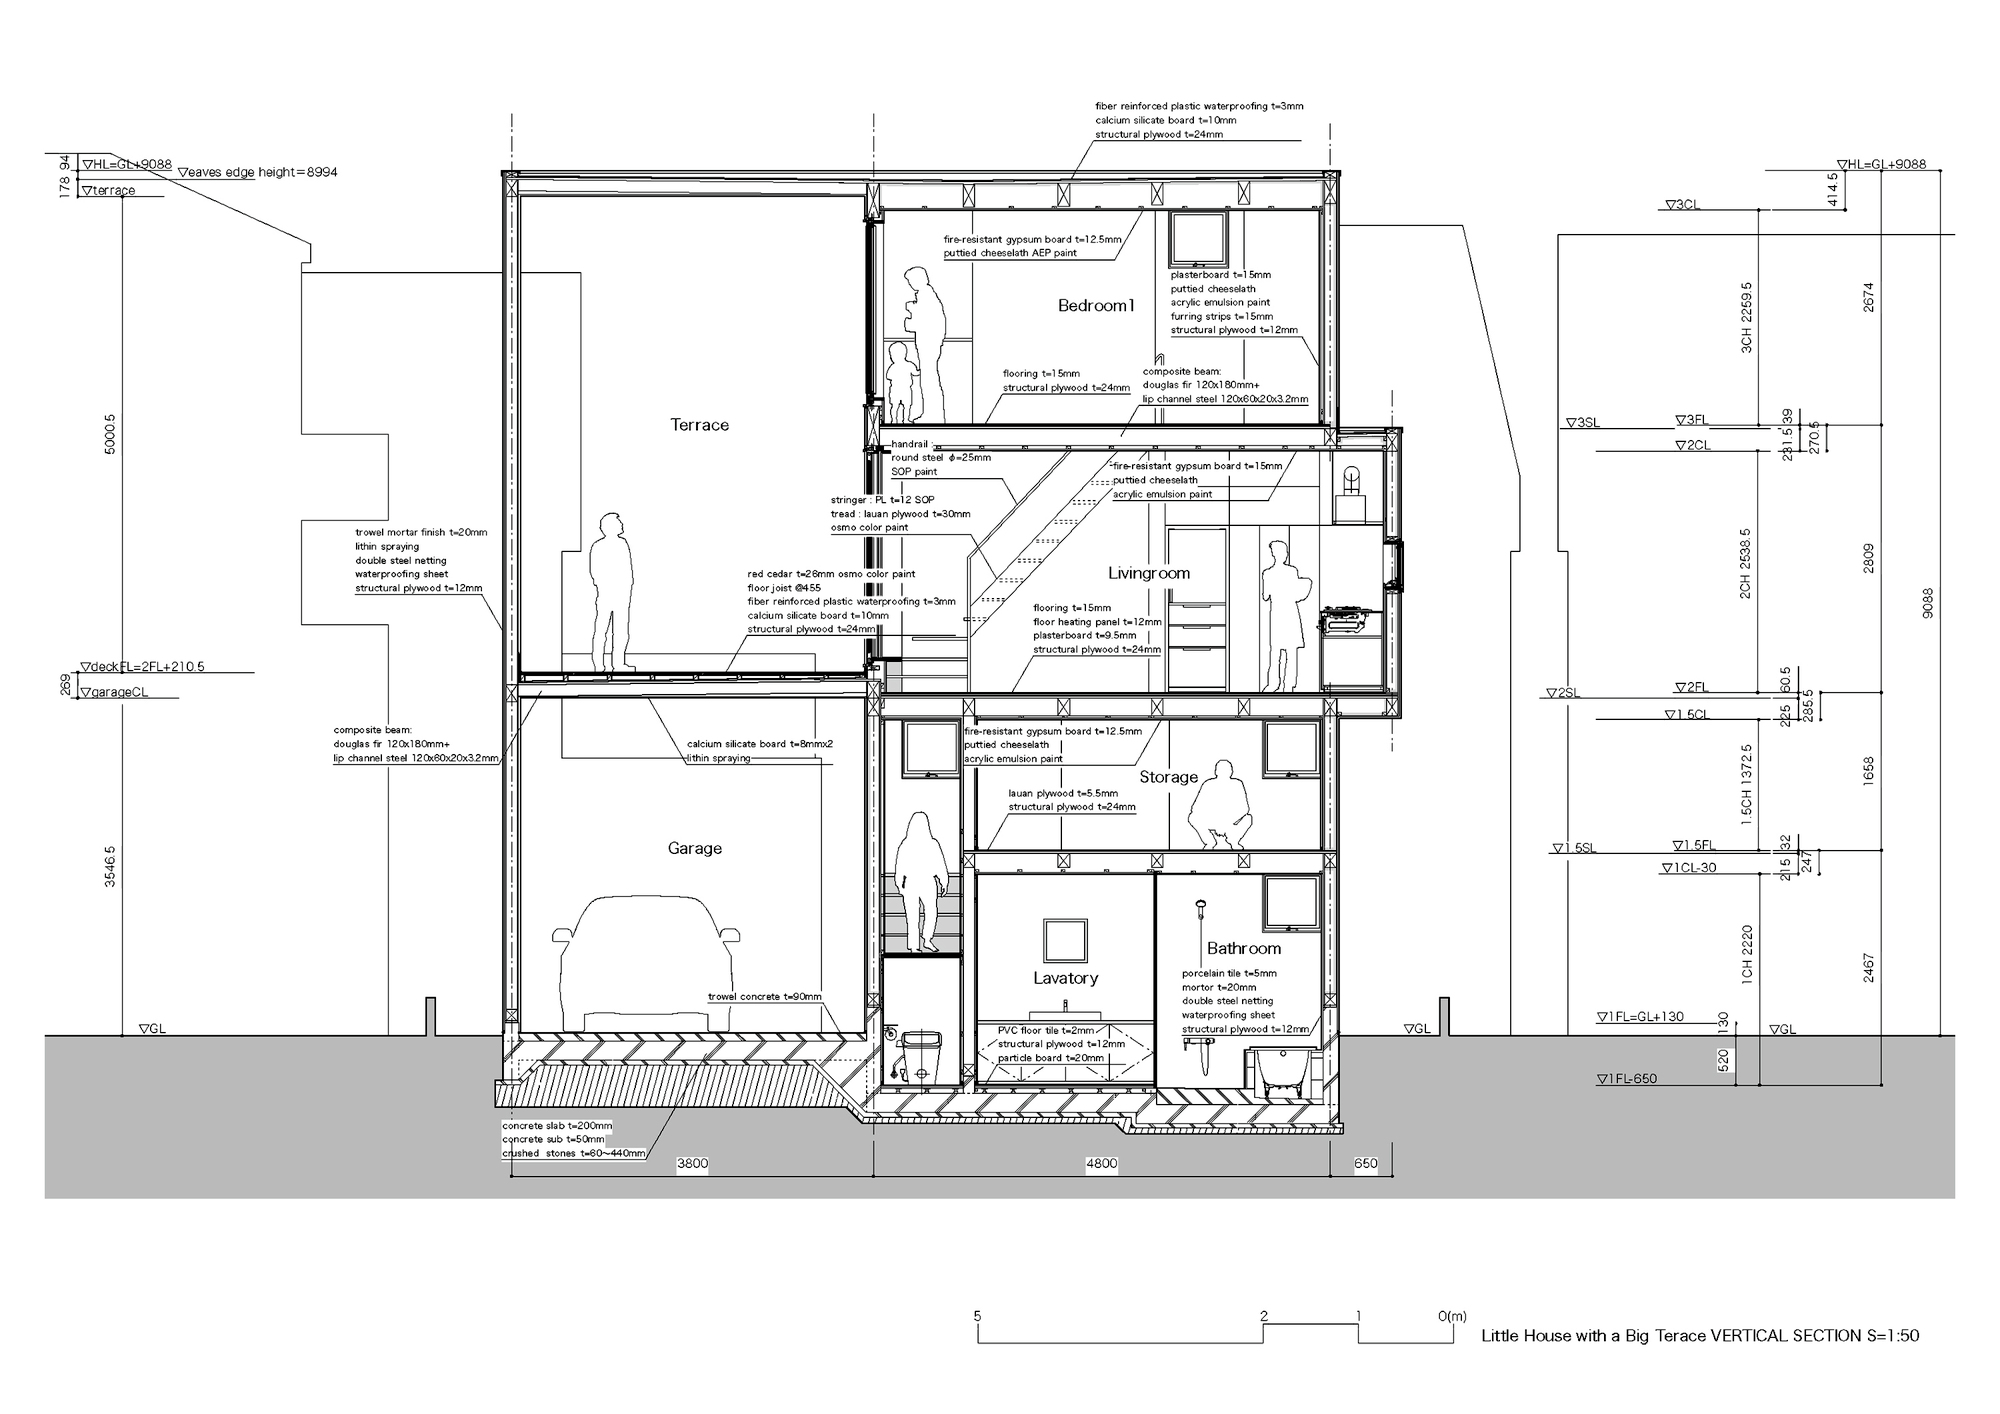 Bathroom section drawing - Section